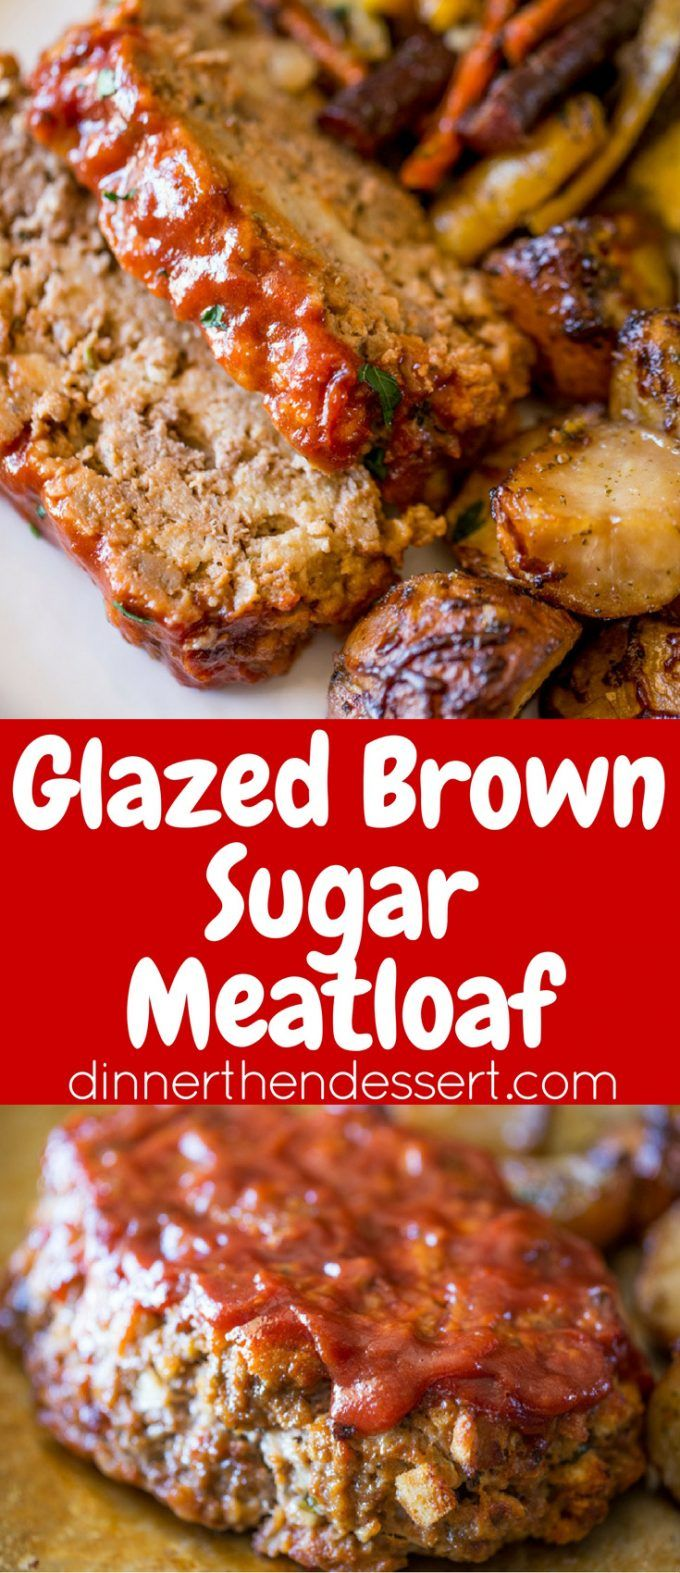 Glazed Brown Sugar Meatloaf with tangy ketchup topping and crushed saltines is the easiest and most flavorful take on a classic meatloaf you'll ever make!